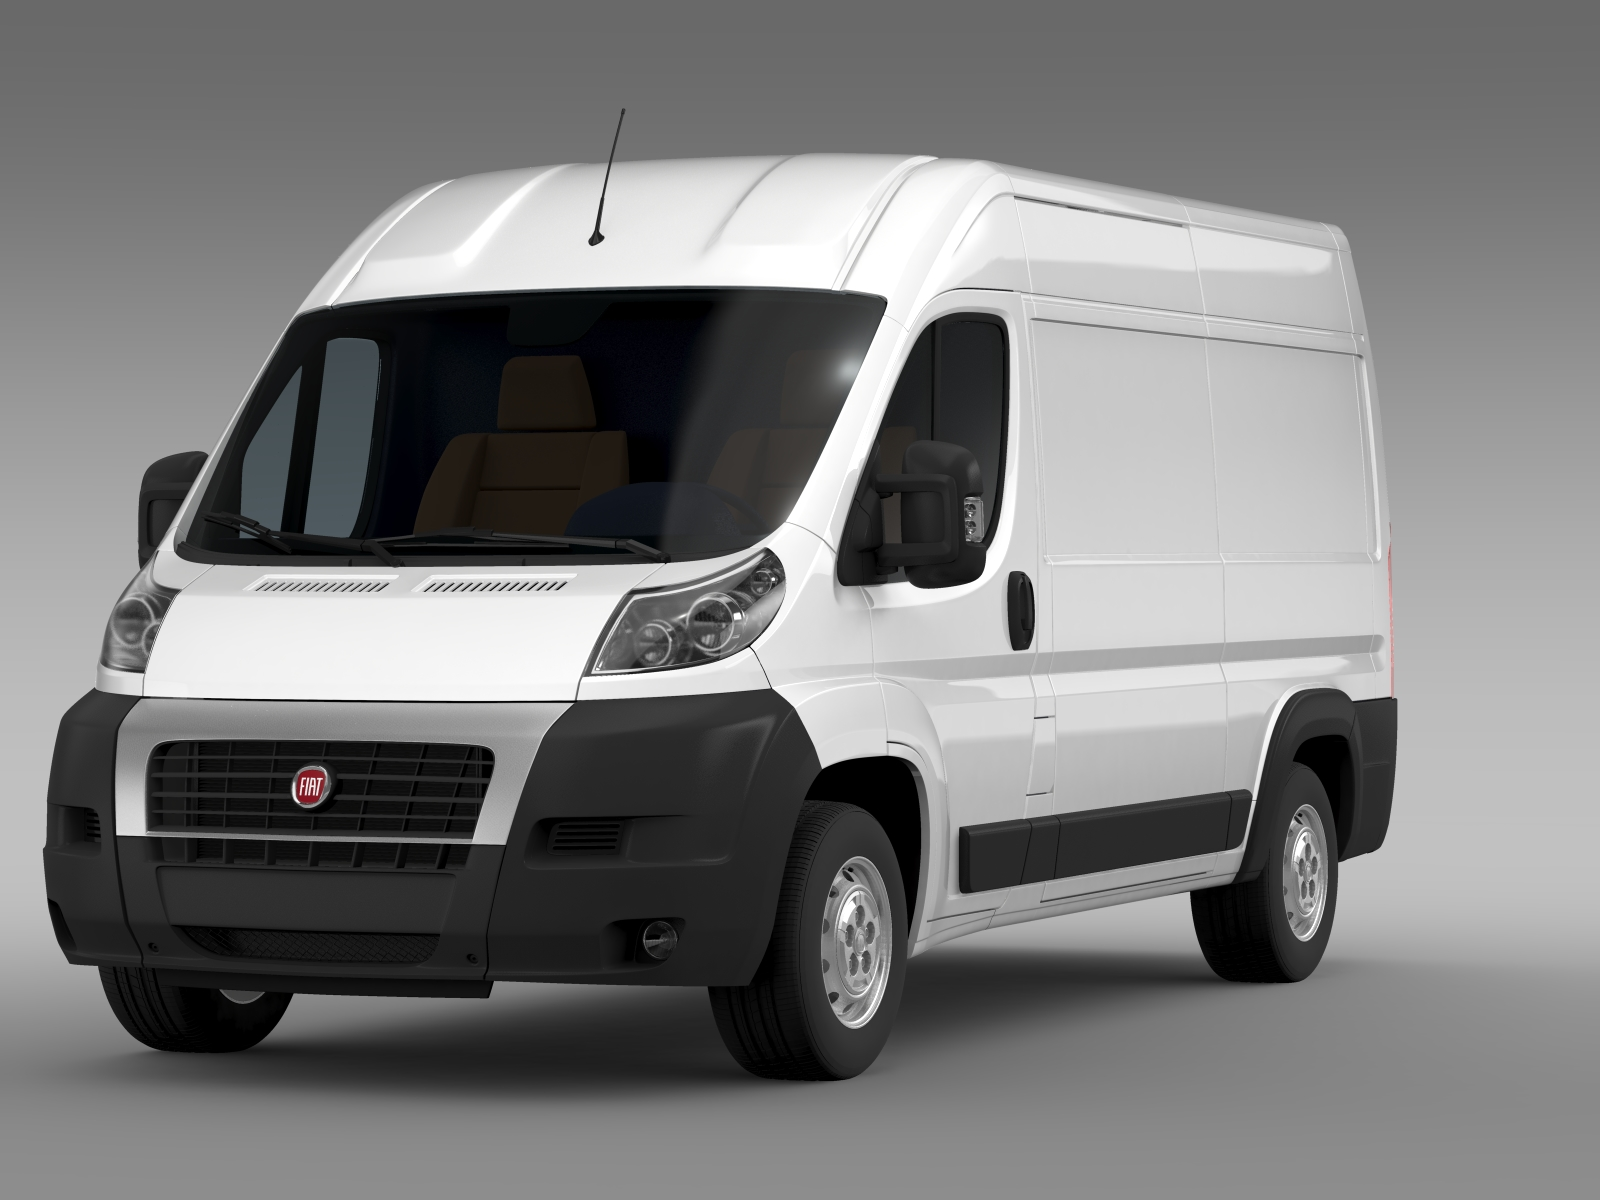 fiat ducato van l2h2 2006 2014 3d model buy fiat ducato van l2h2 2006 2014 3d model flatpyramid. Black Bedroom Furniture Sets. Home Design Ideas